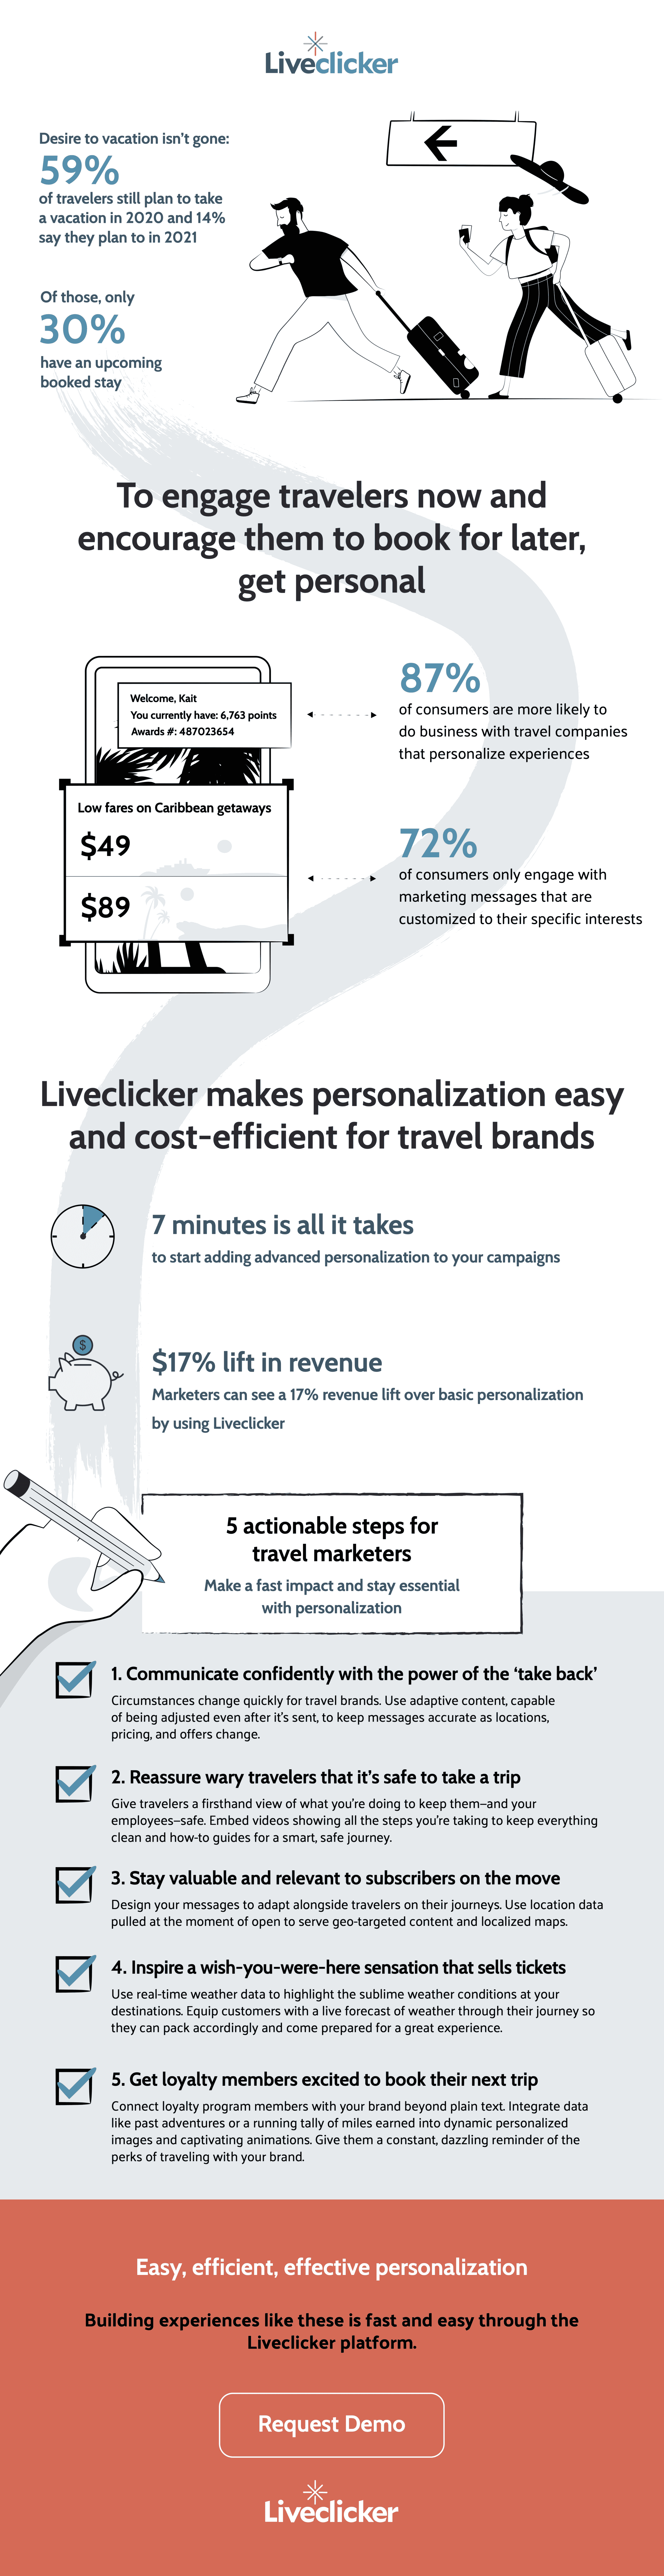 5 actionable steps for travel marketers